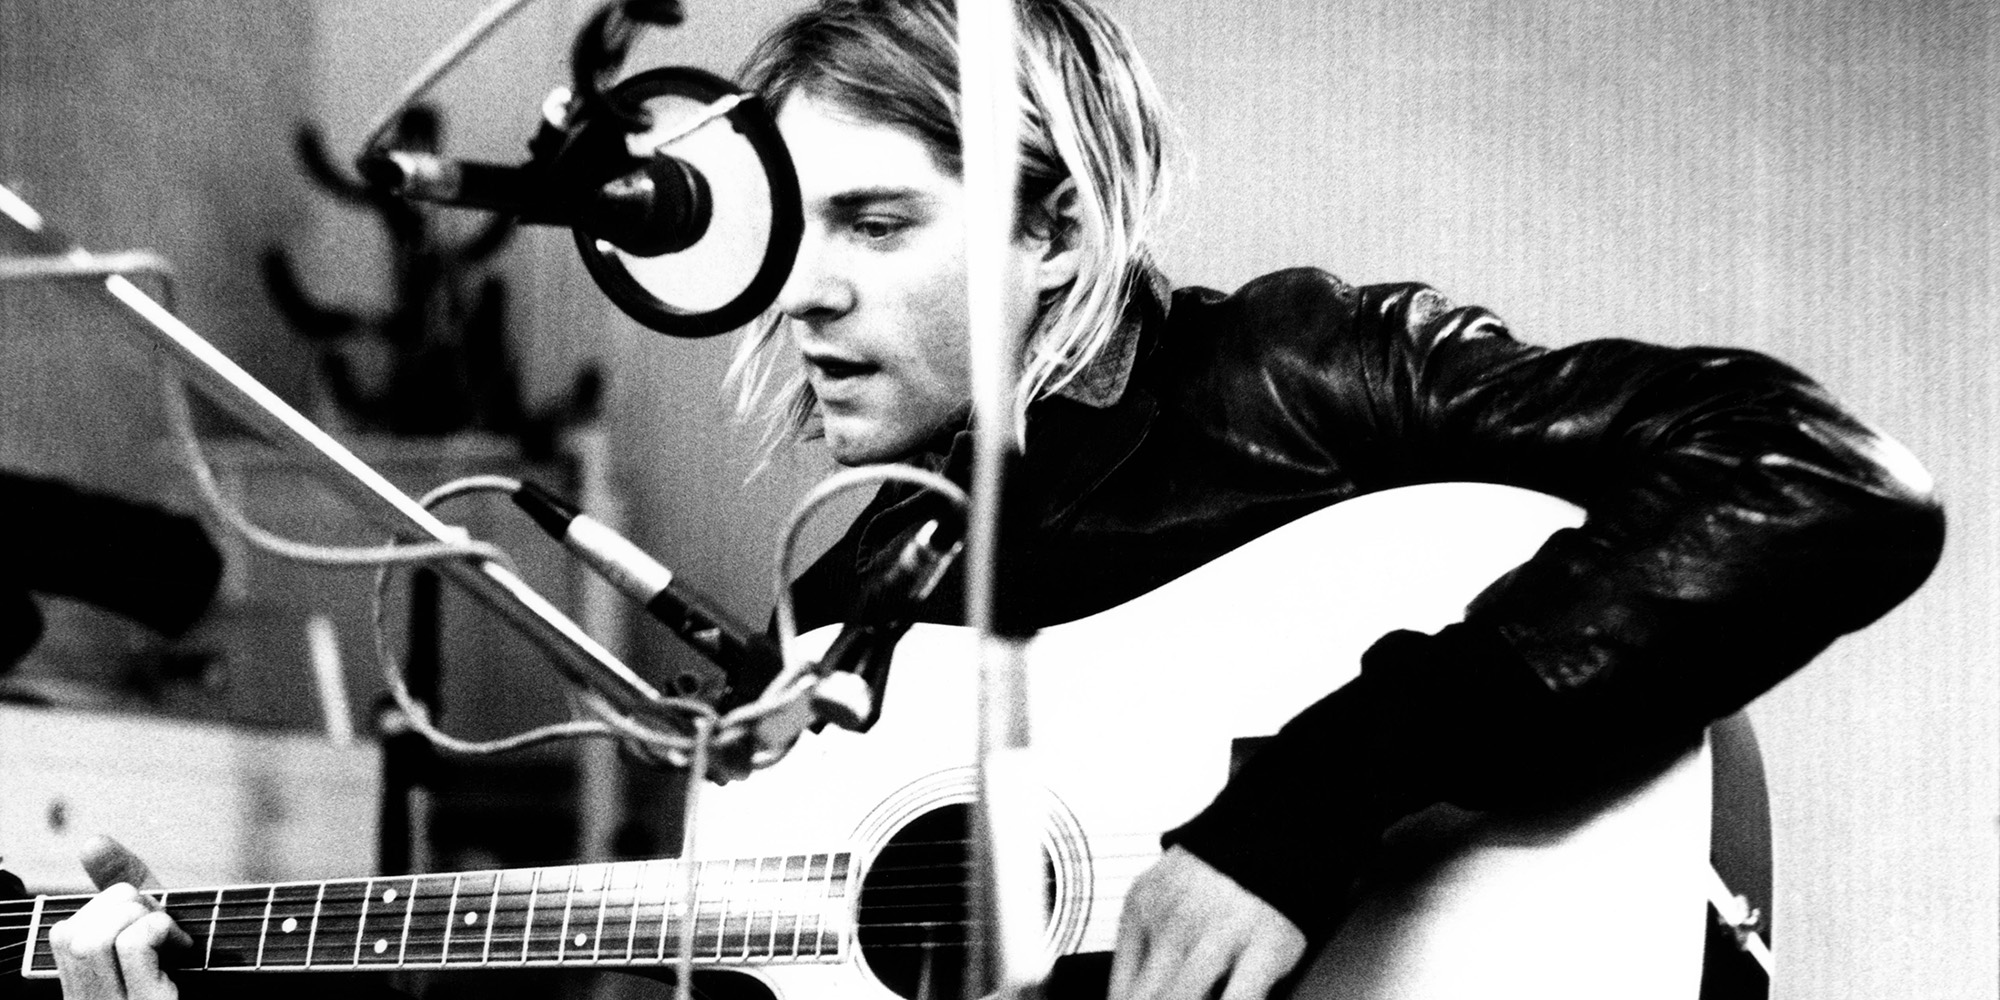 Kurt Cobain In Photos Kurt Cobain S Life In Photos